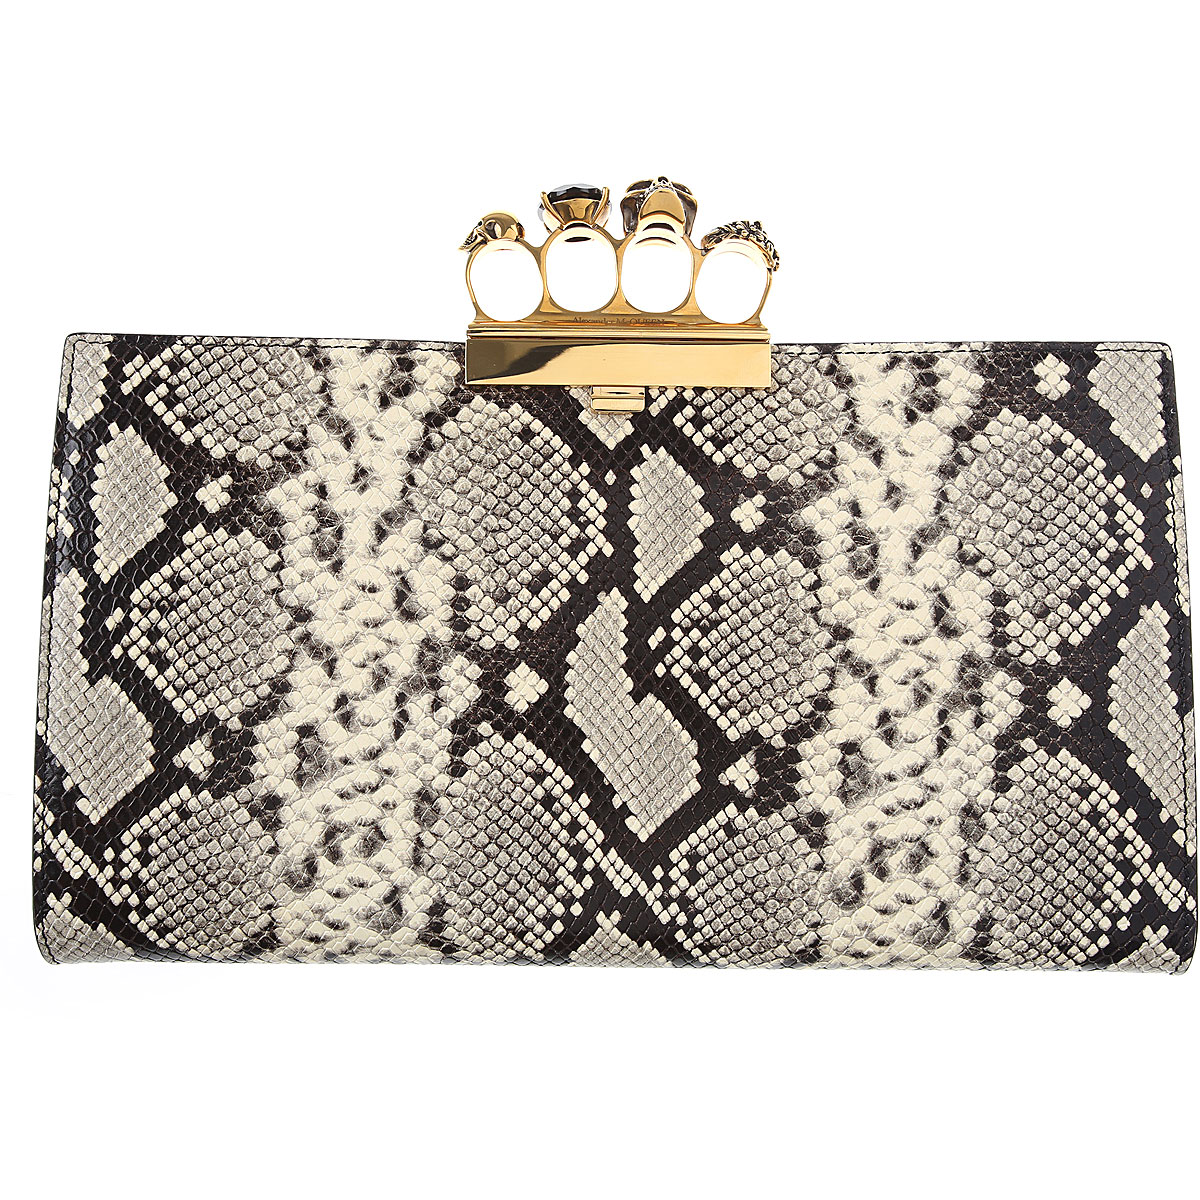 Alexander McQueen Clutch Bag On Sale, Rock, Leather, 2019